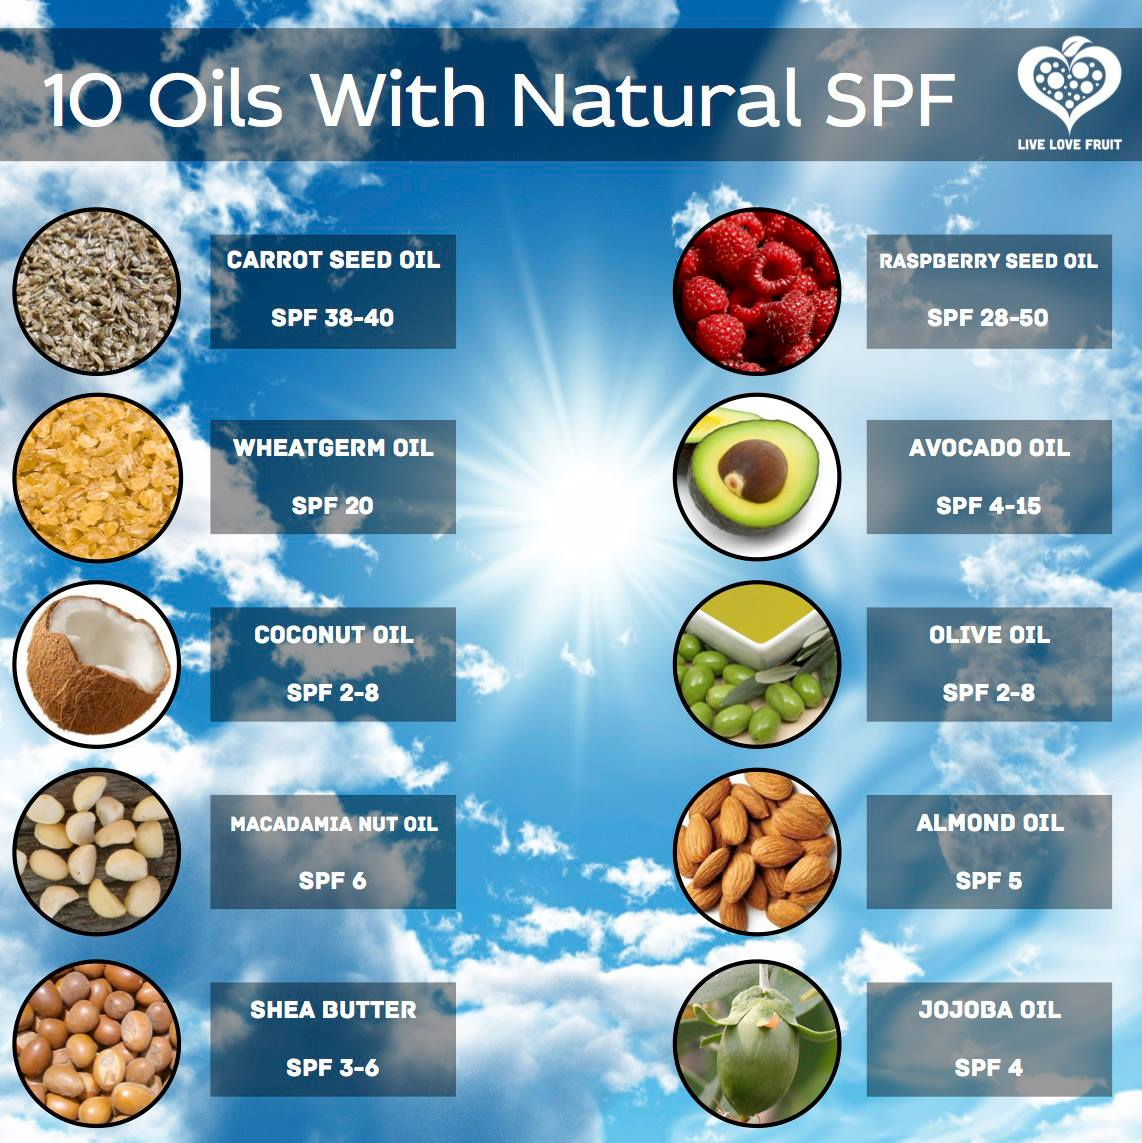 Is Coconut Oil A Natural Spf